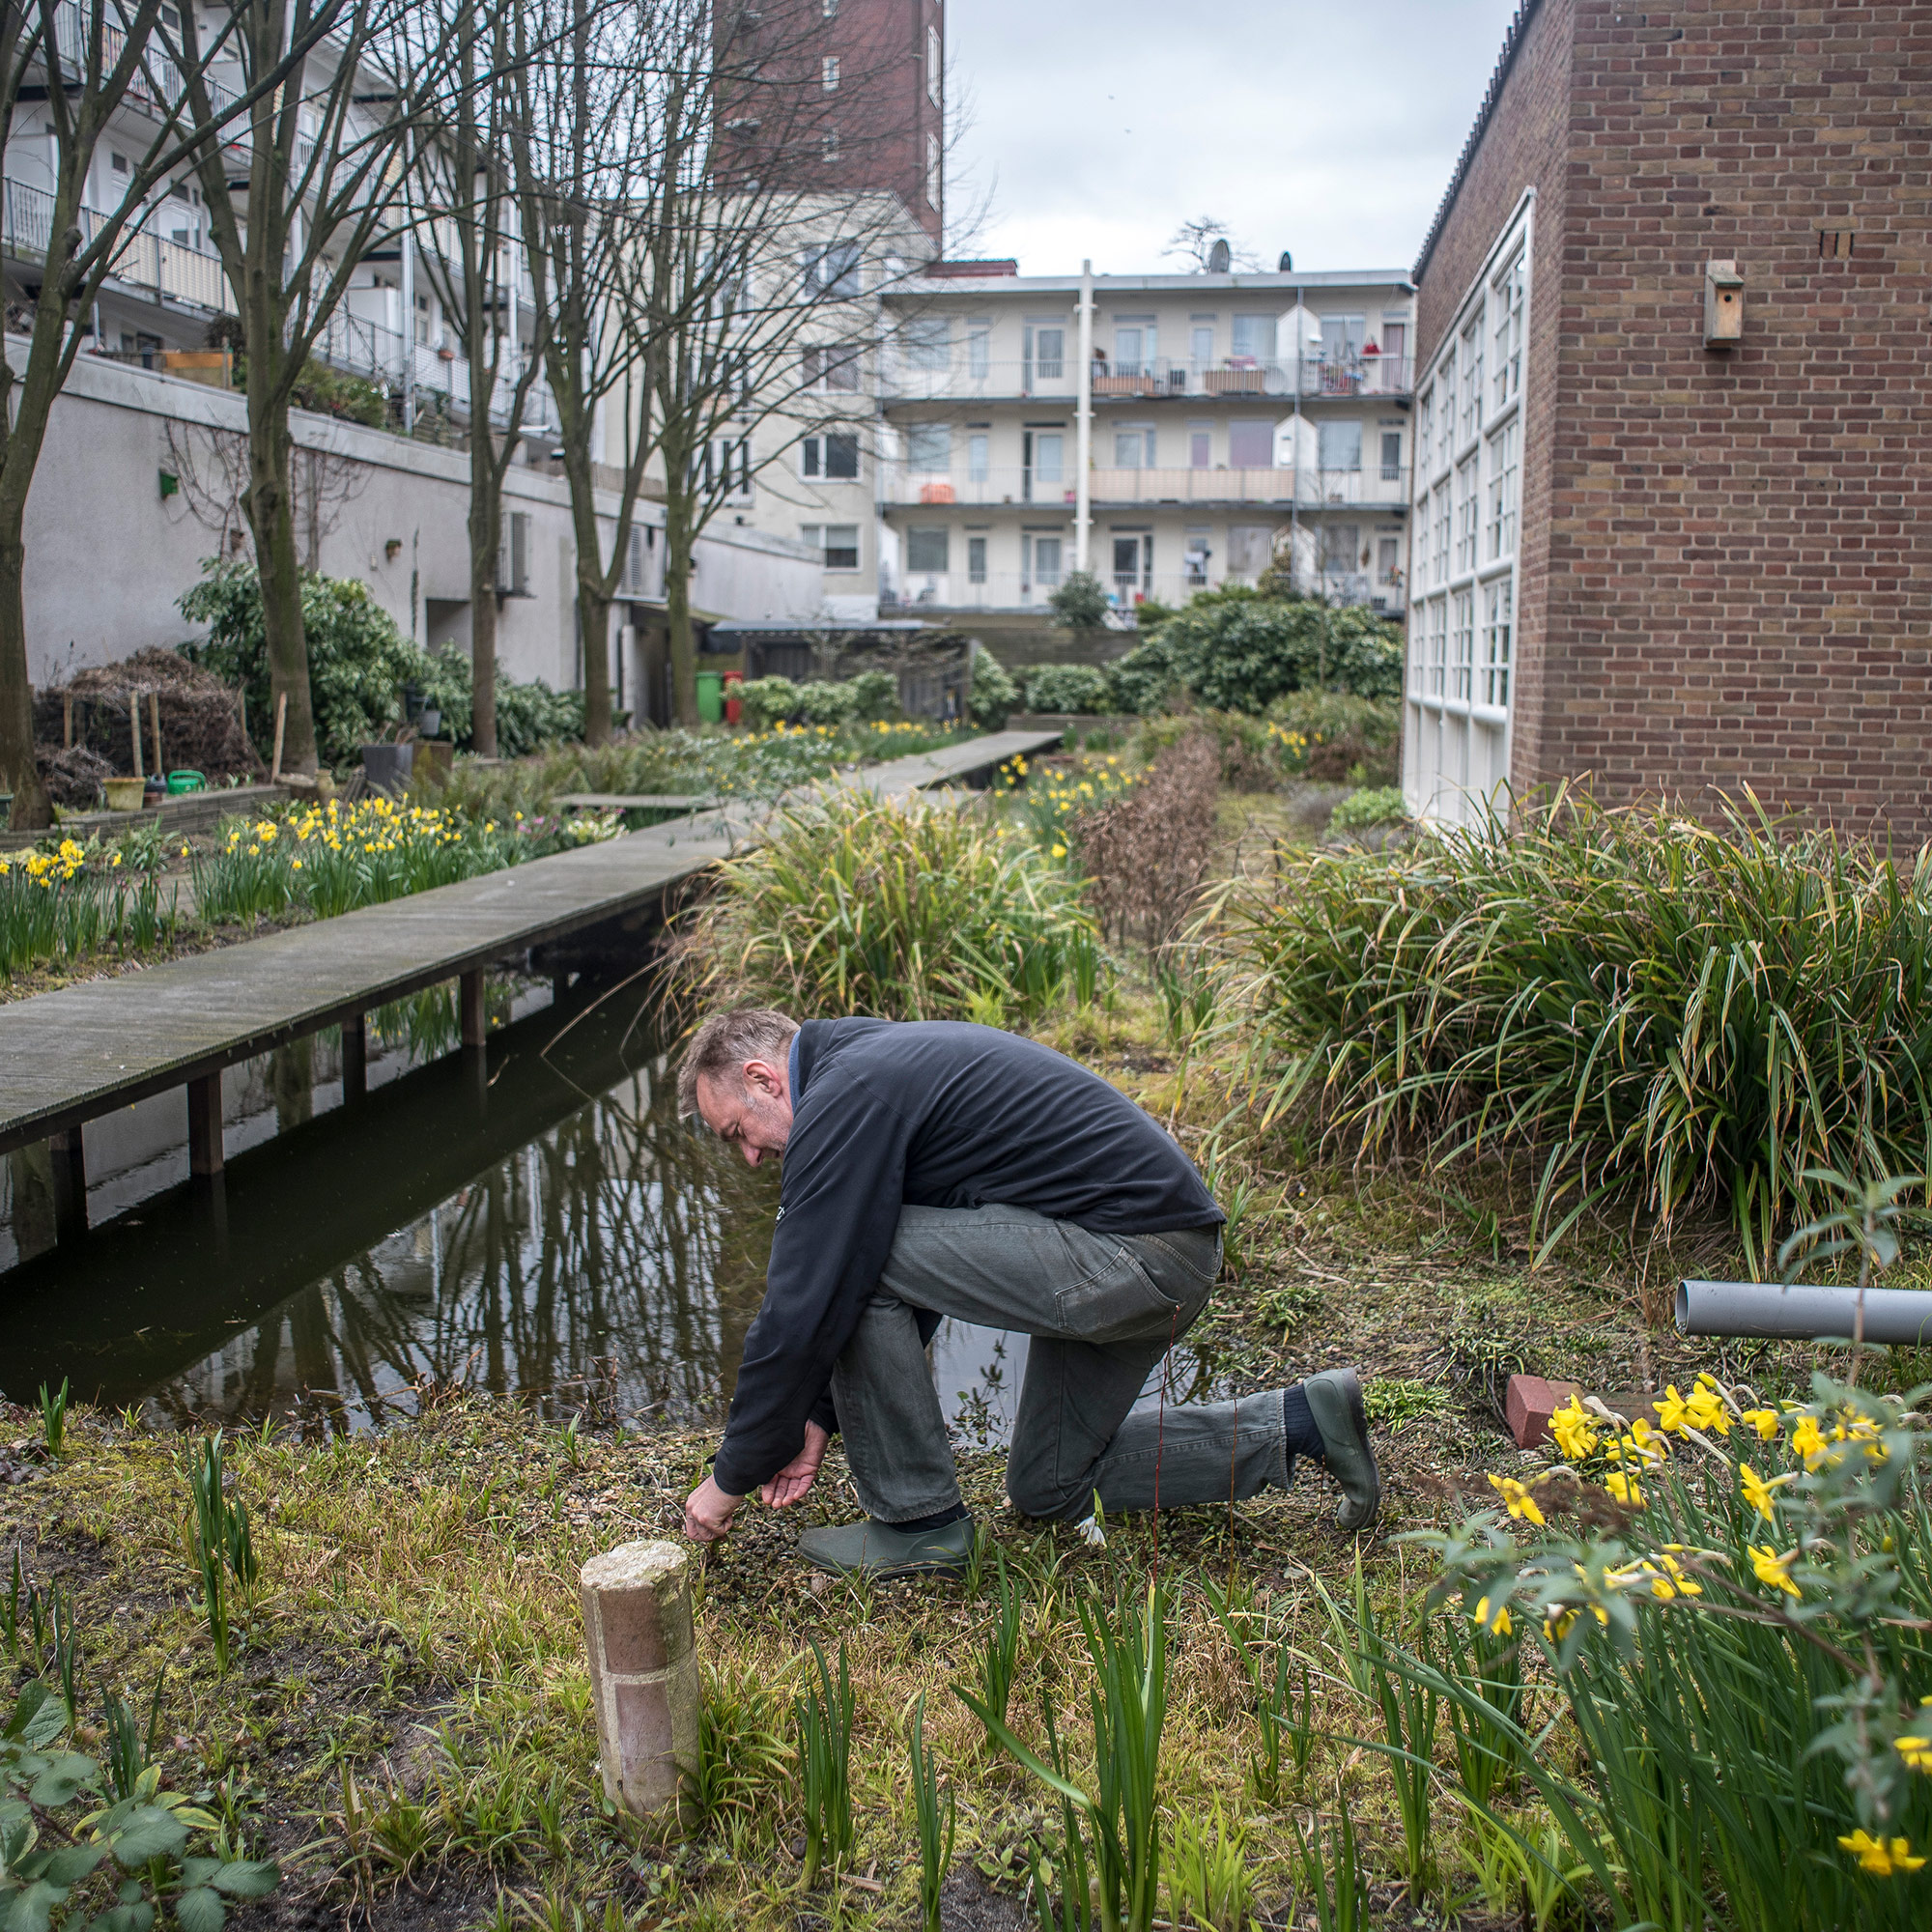 Arnoud Hekken helped start and maintains De Tuin van Jan. It's hidden behind Meesteropleiding Coupeur in West Amsterdam. (Photo by Joris van Gennip/GroundTruth)